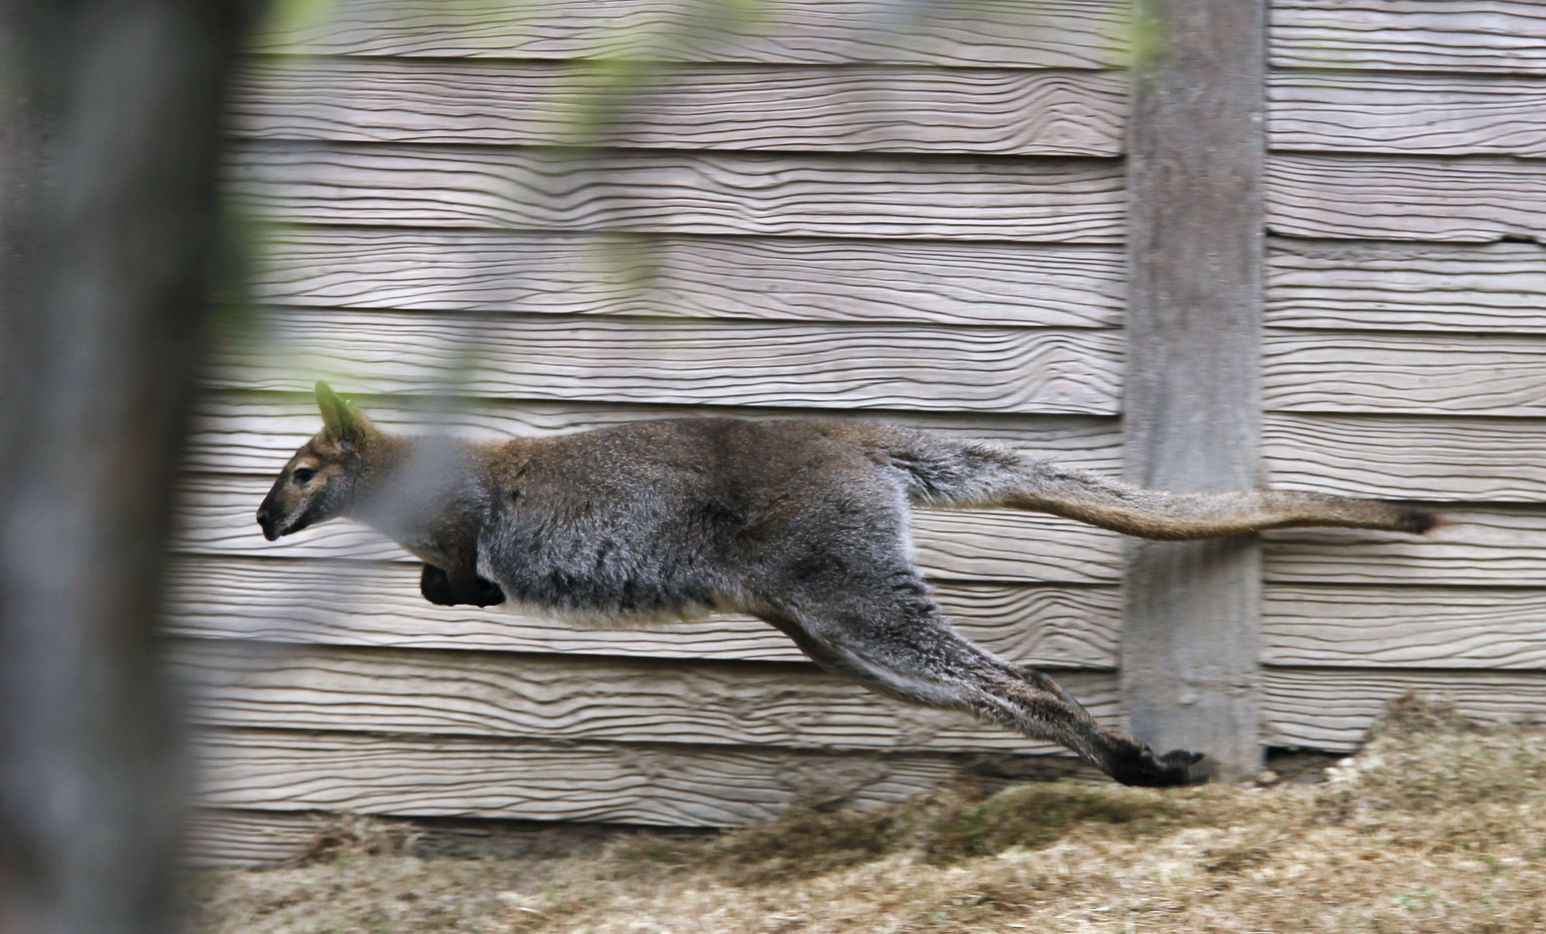 A wallaby runs around in the Koala Walkabout exhibit which opened March 2012 at the Dallas Zoo.